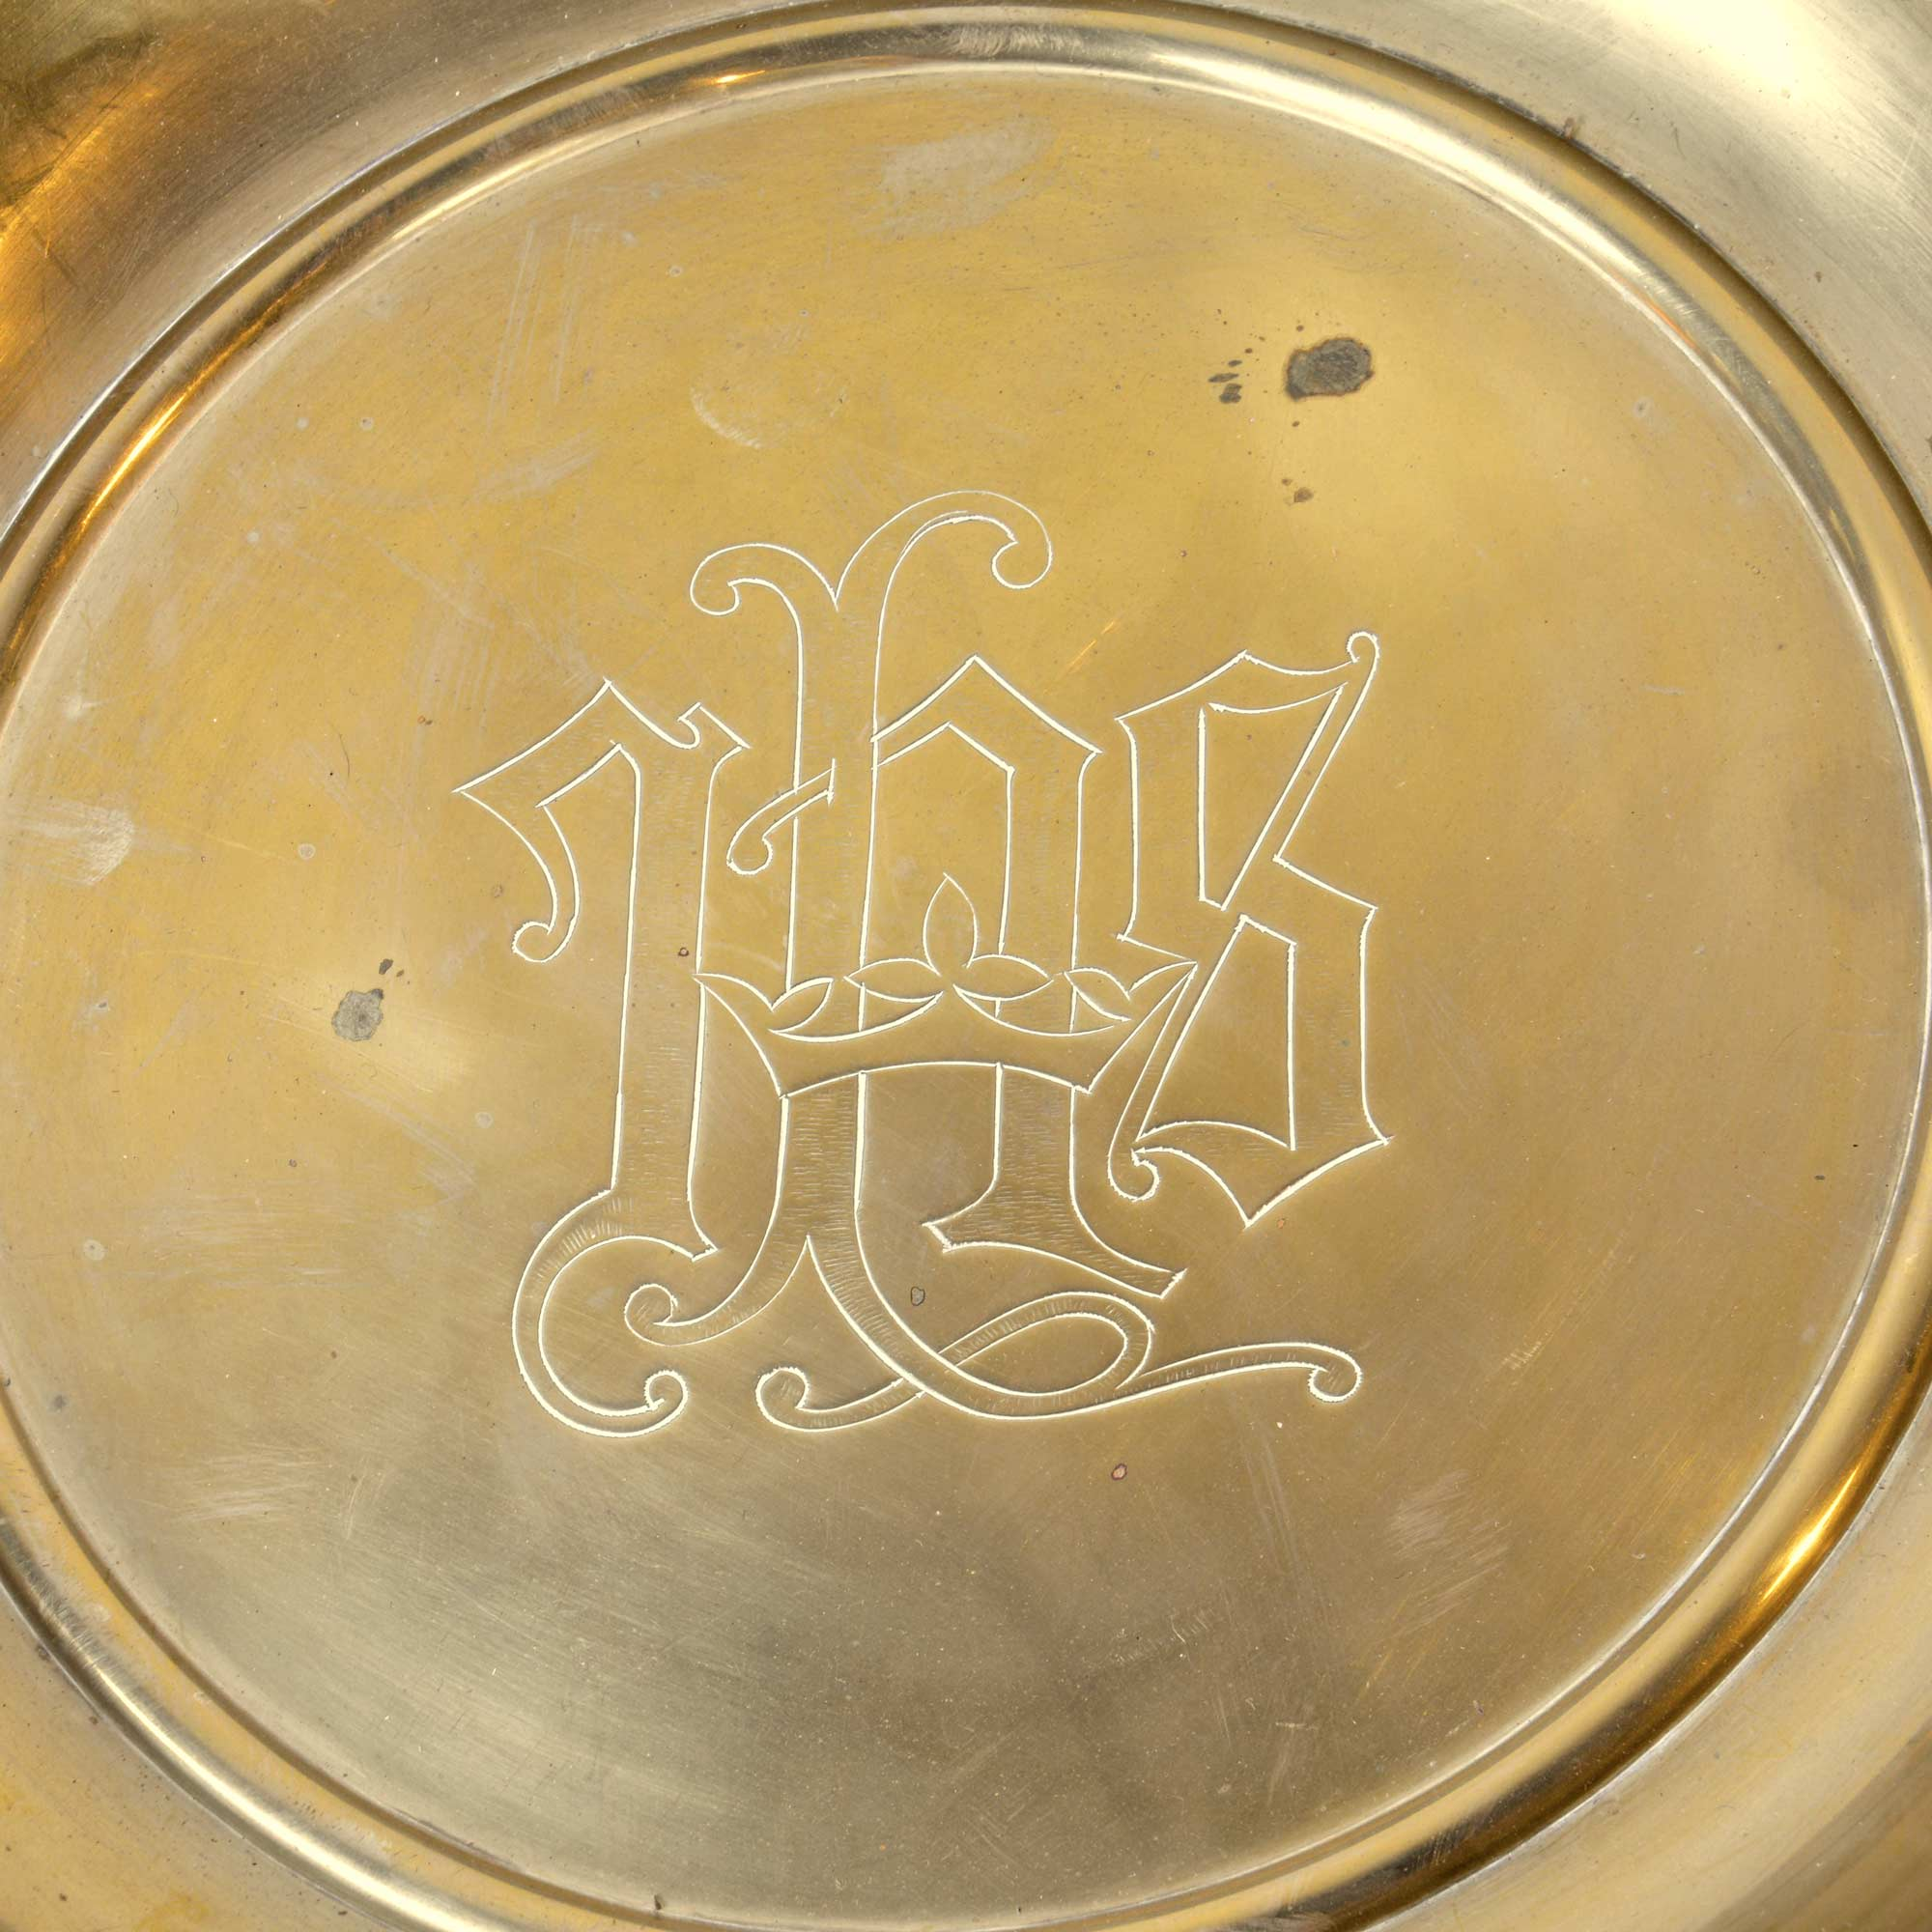 46329-A-brass-collection-plate-with-cristogram-detail.jpg